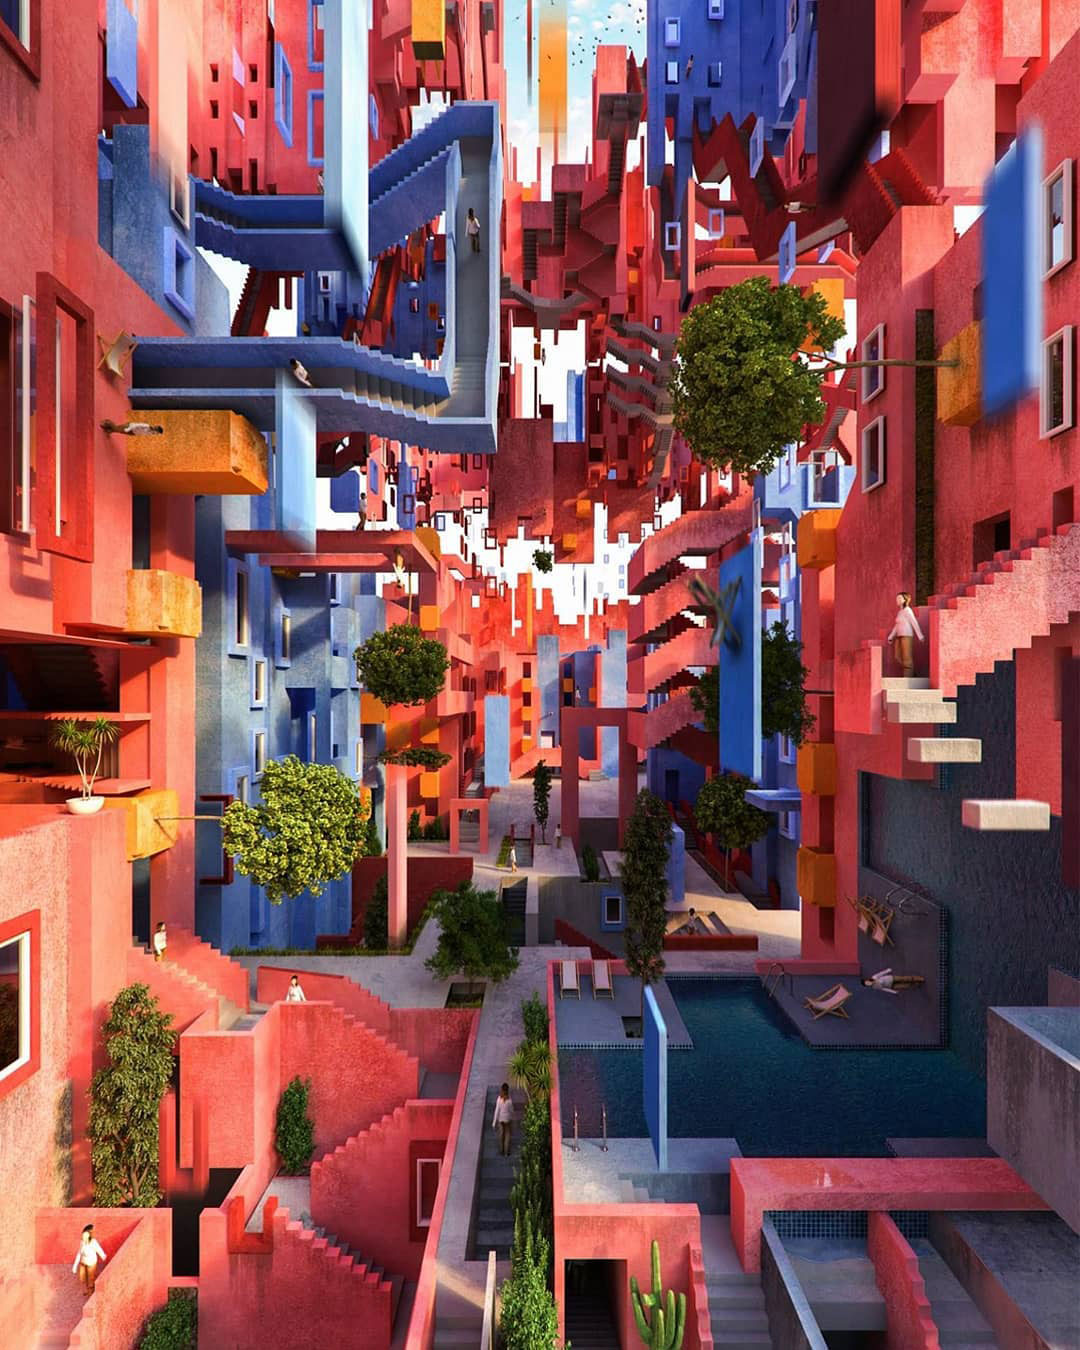 Disorienting Escherian composite image of intertwining stair design staircases in the colors red and blue designed by the architect Ricardo Bofill